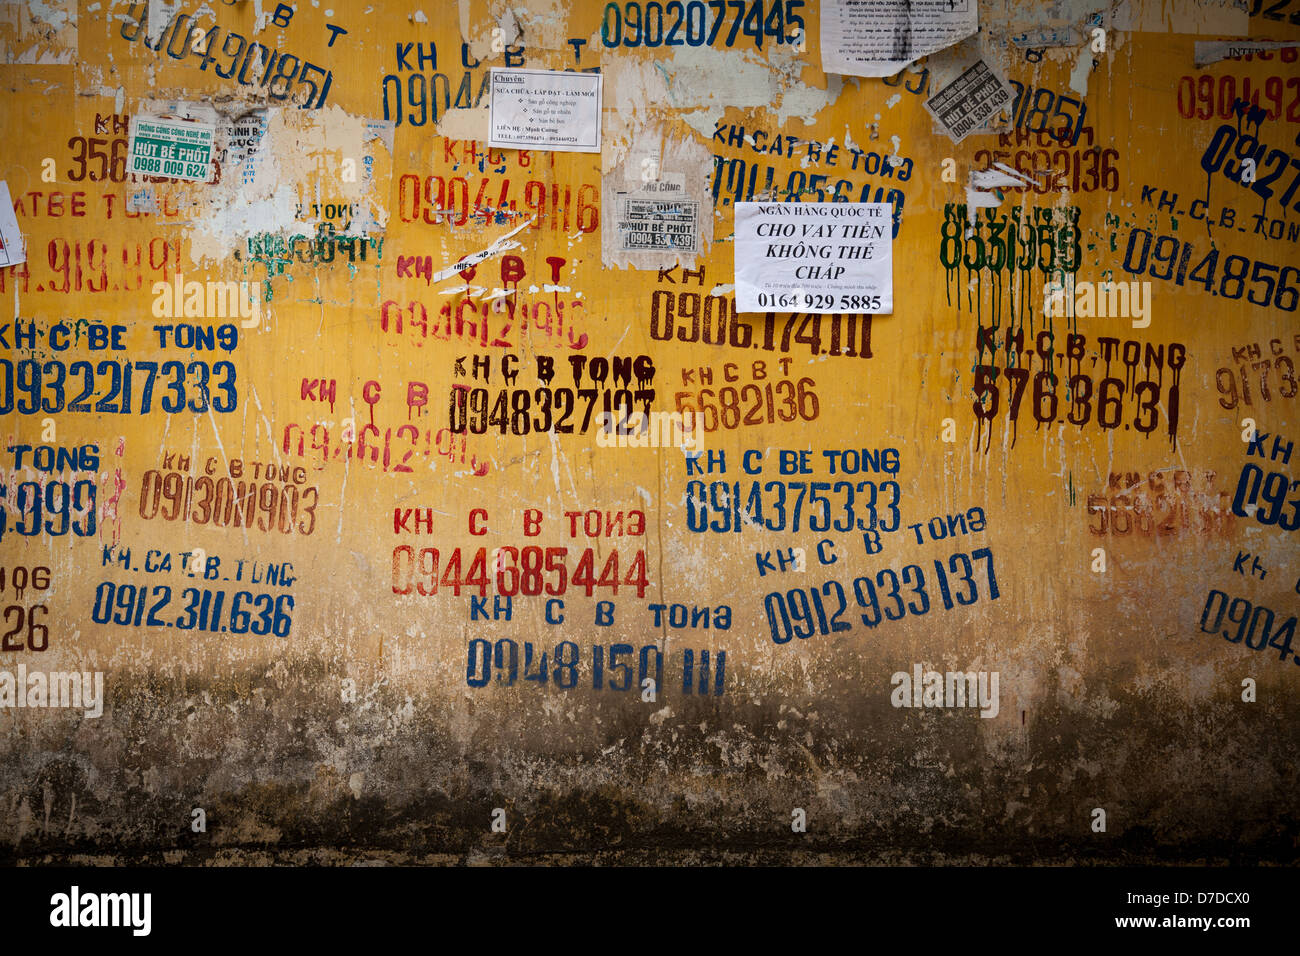 Adverts on a wall in a residential area of Hanoi, Vietnam - Stock Image